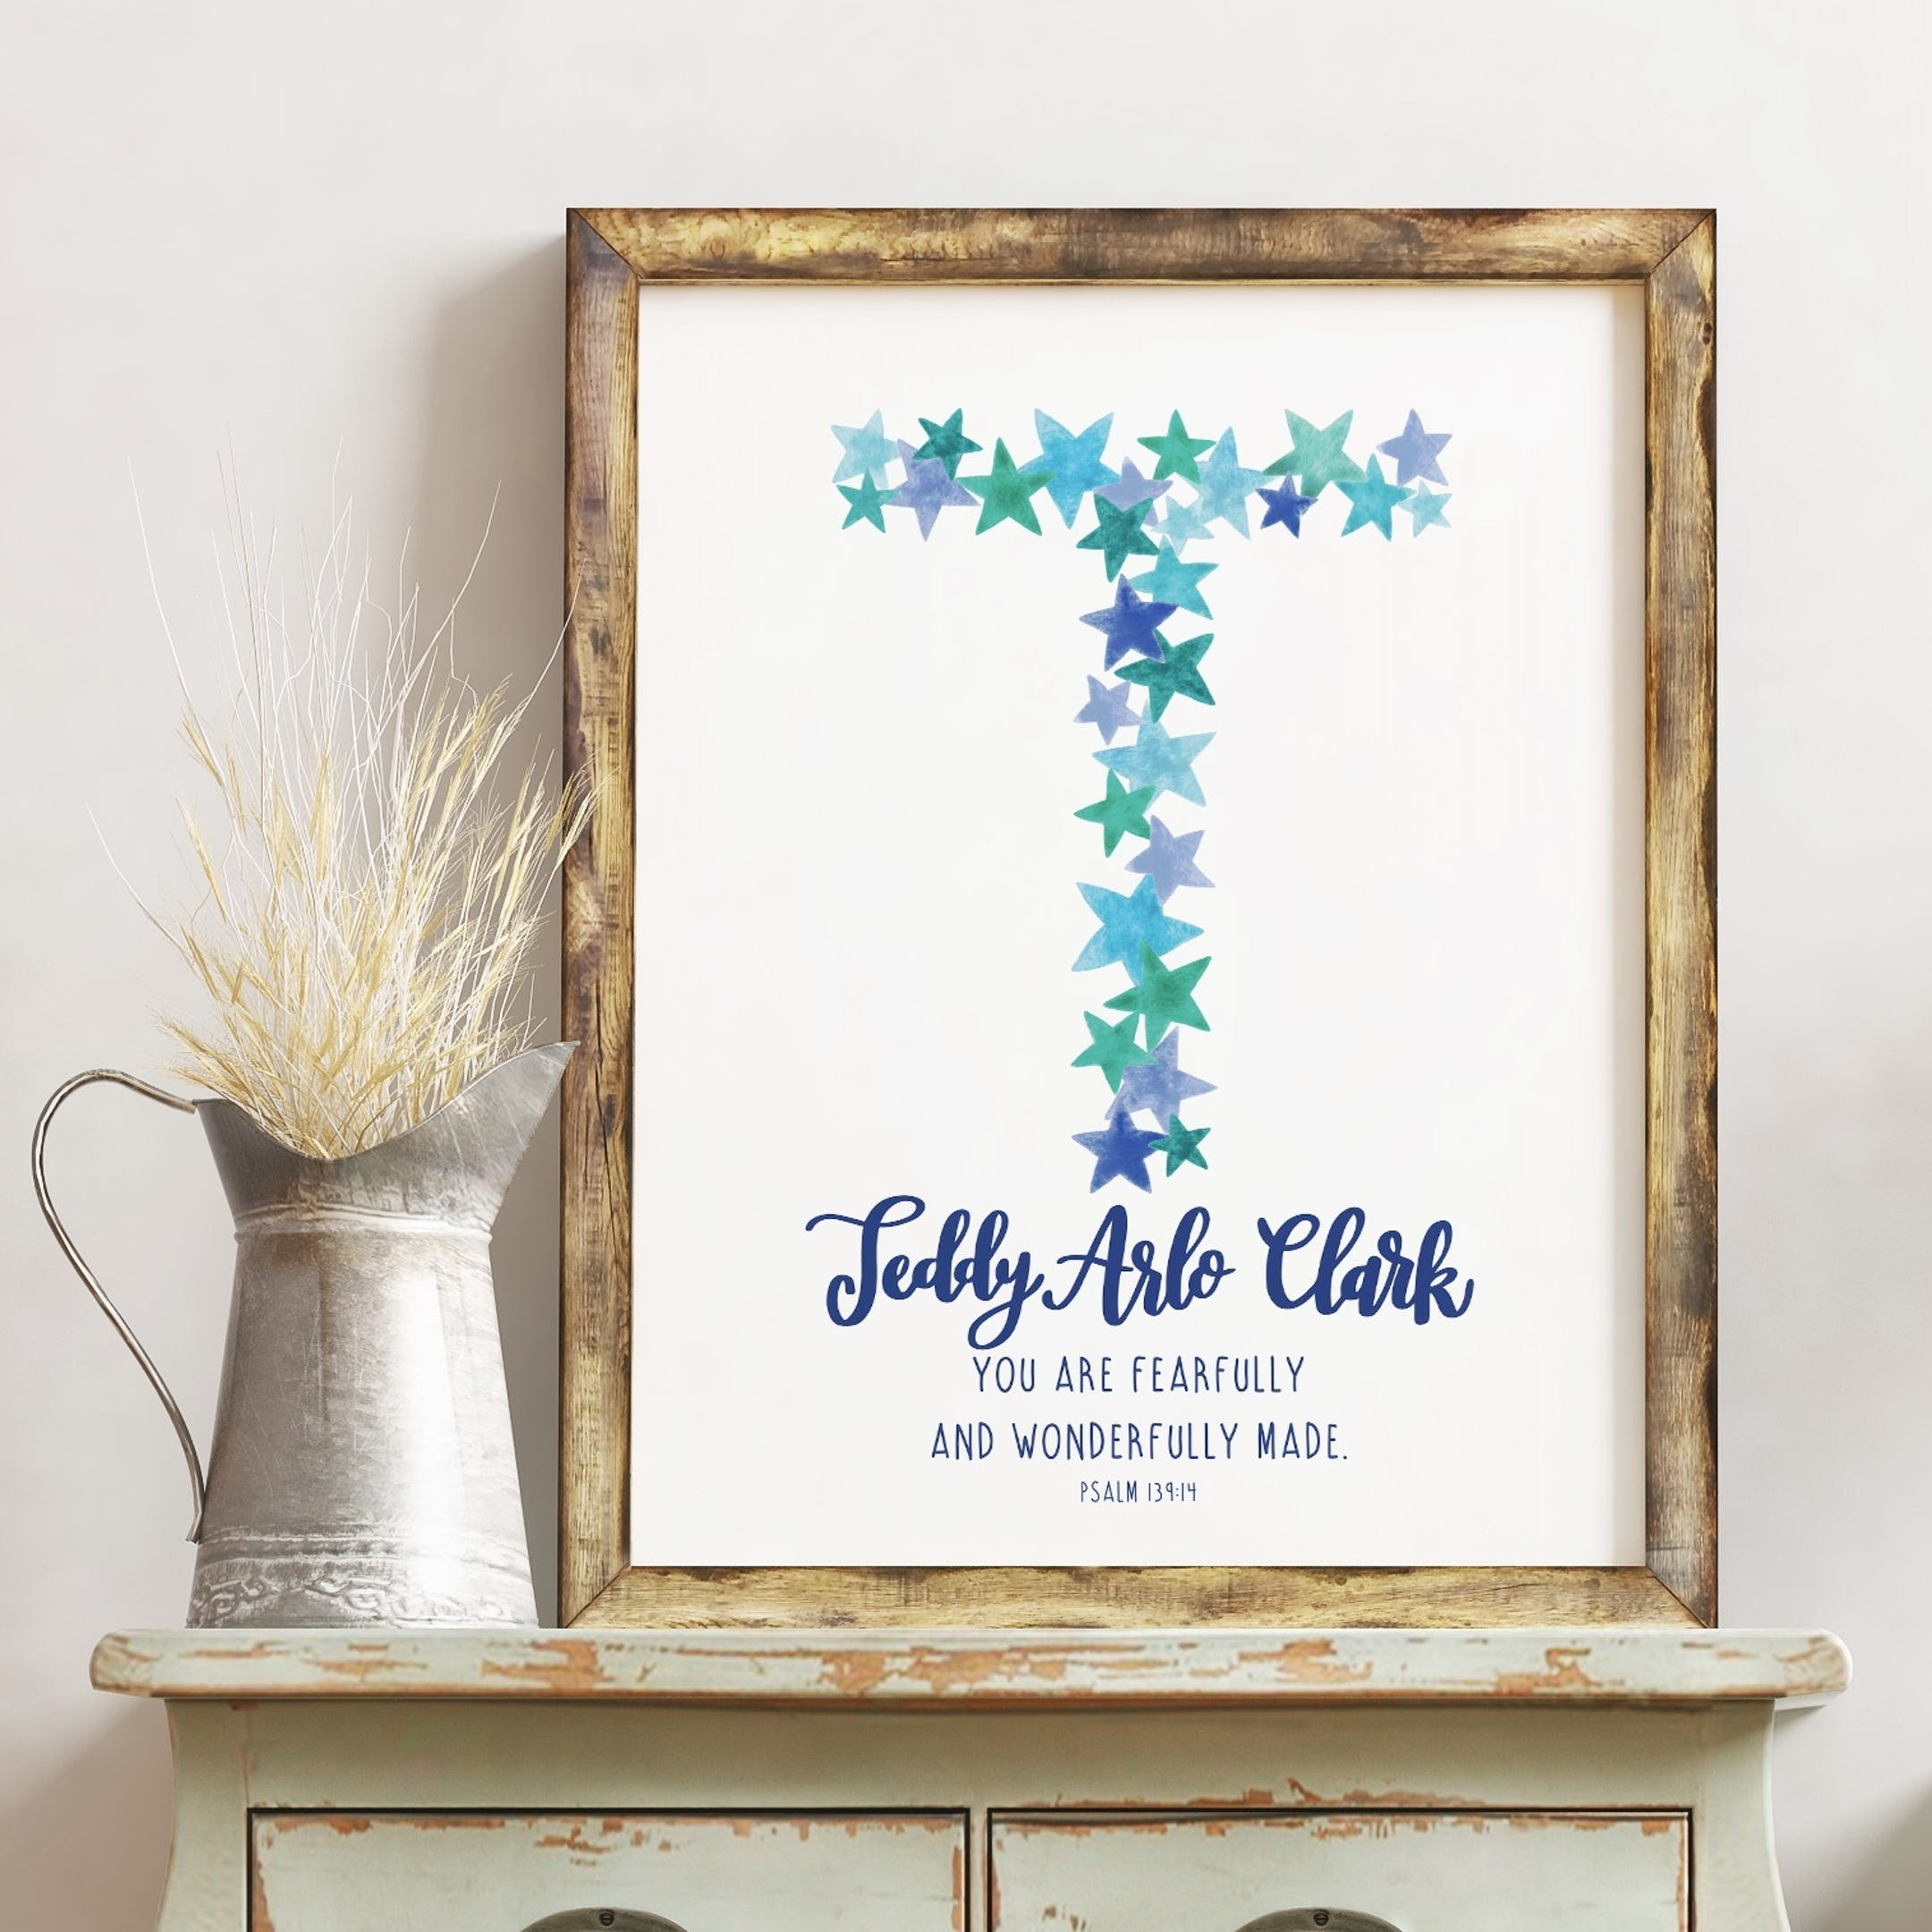 Personalised Baby Boy Name Print - Psalm 139:14 - Izzy and Pop